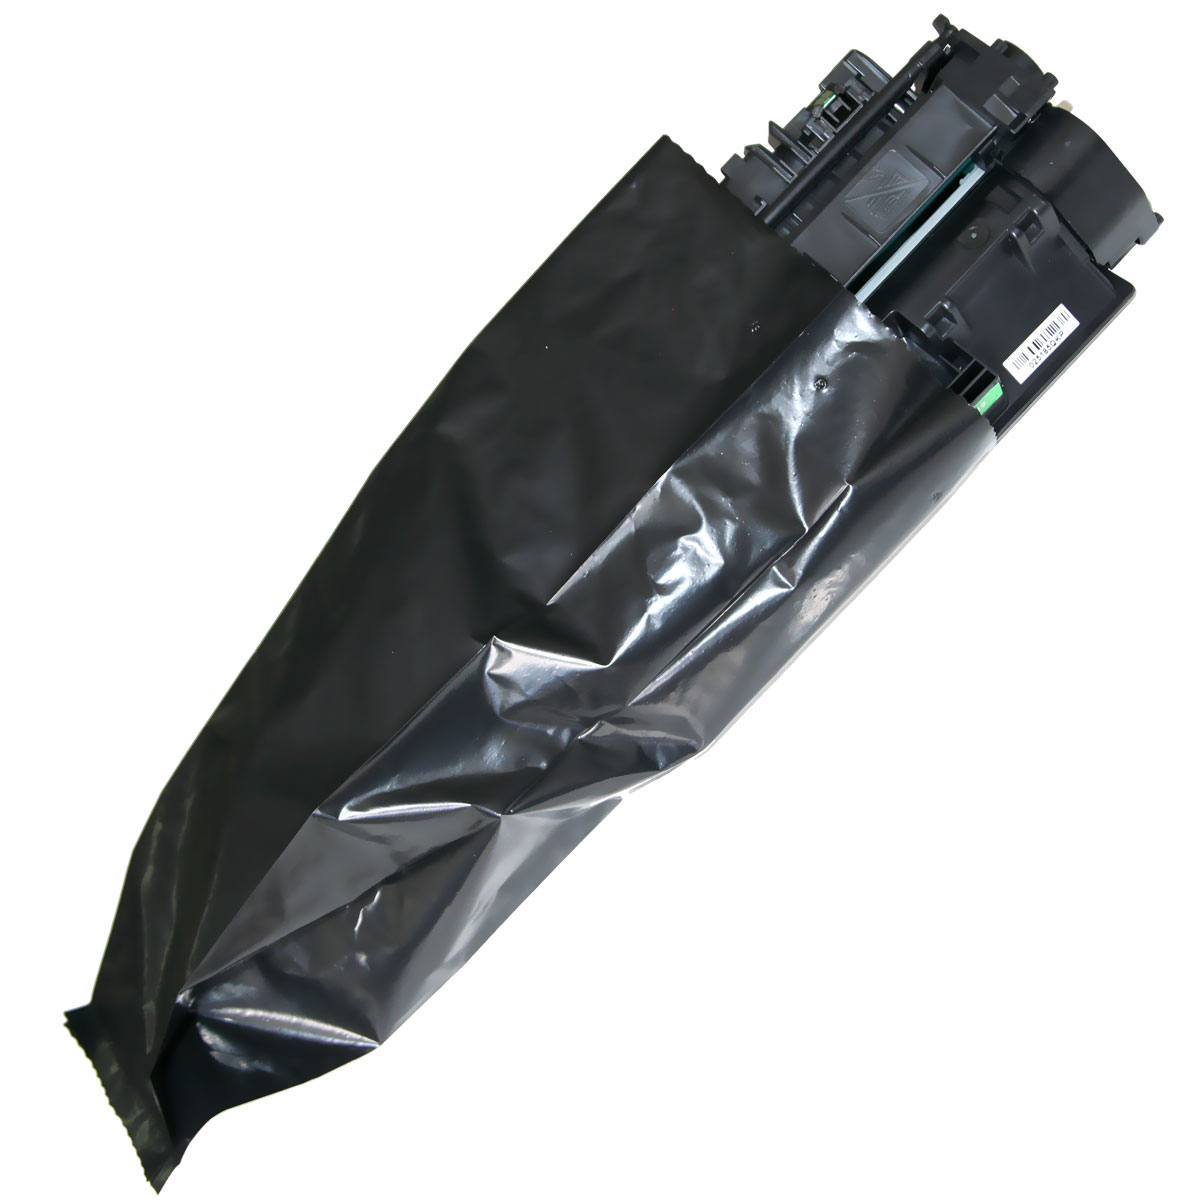 Black foil bag, non-sticks